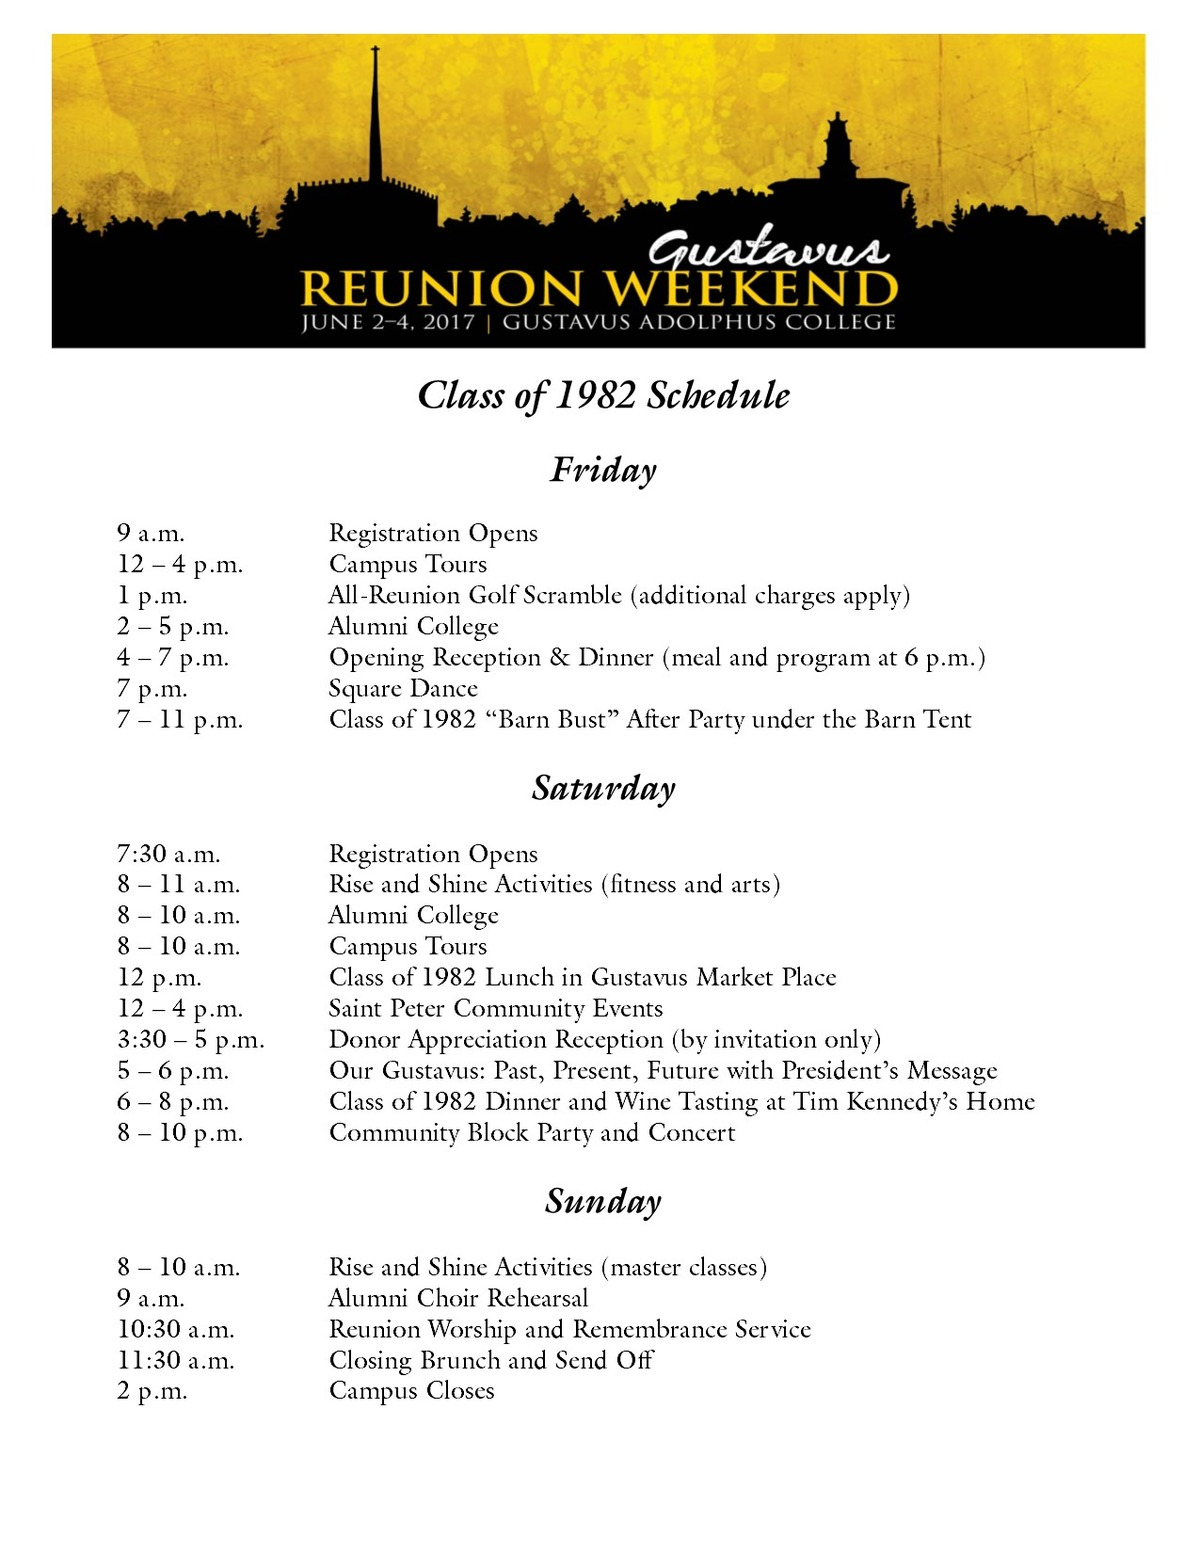 Class of 1982 Reunion Weekend Schedule